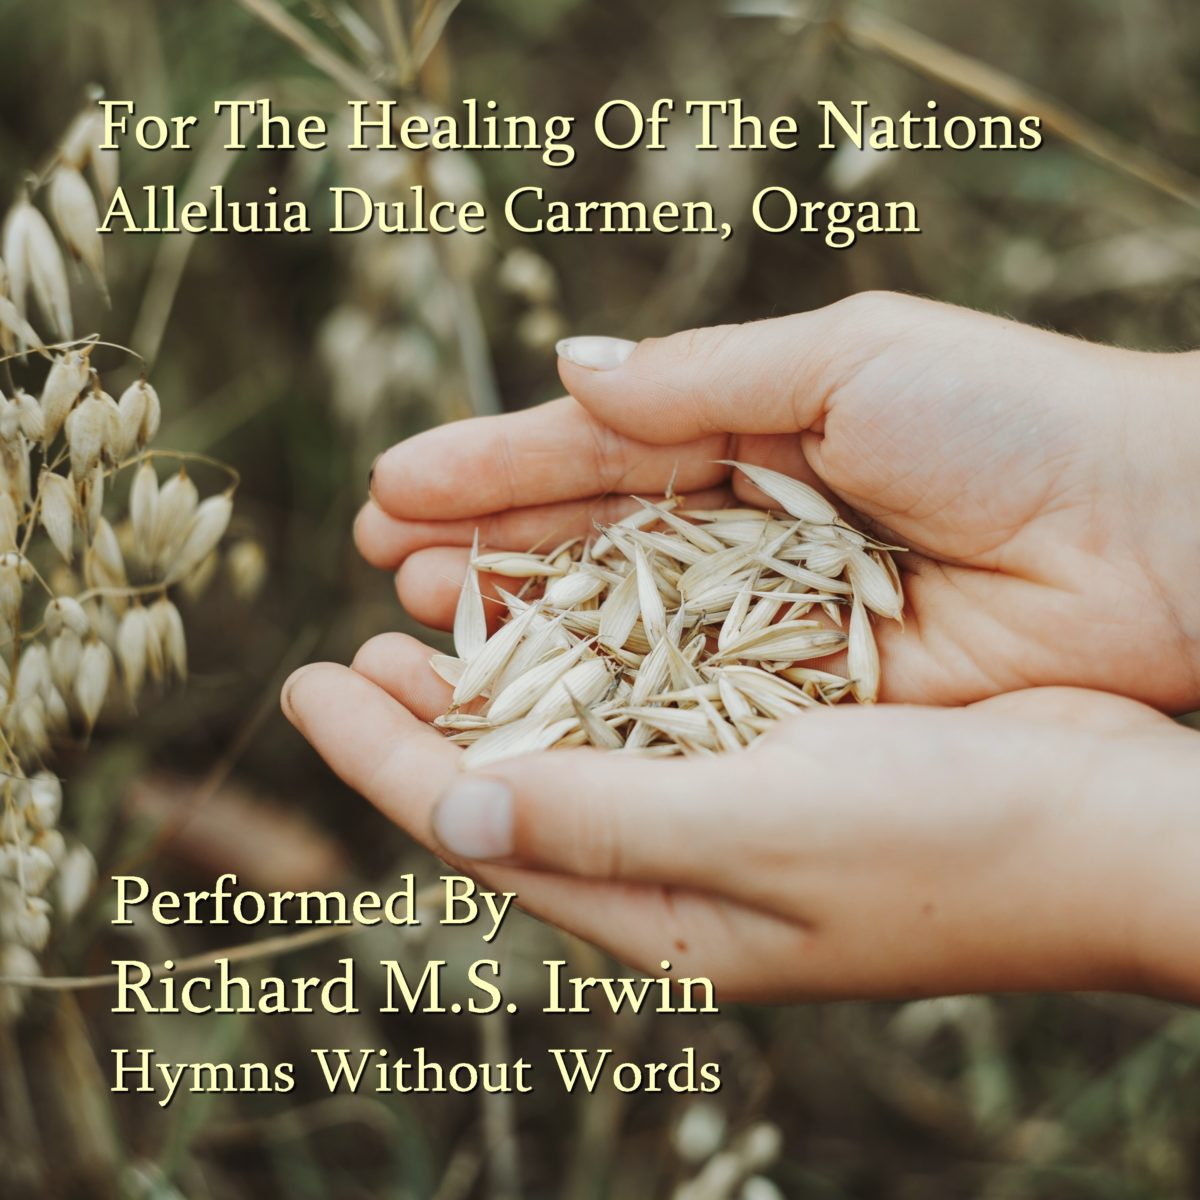 For The Healing Of The Nations (Alleluia Dulce Carmen, Organ, 4 Verses)